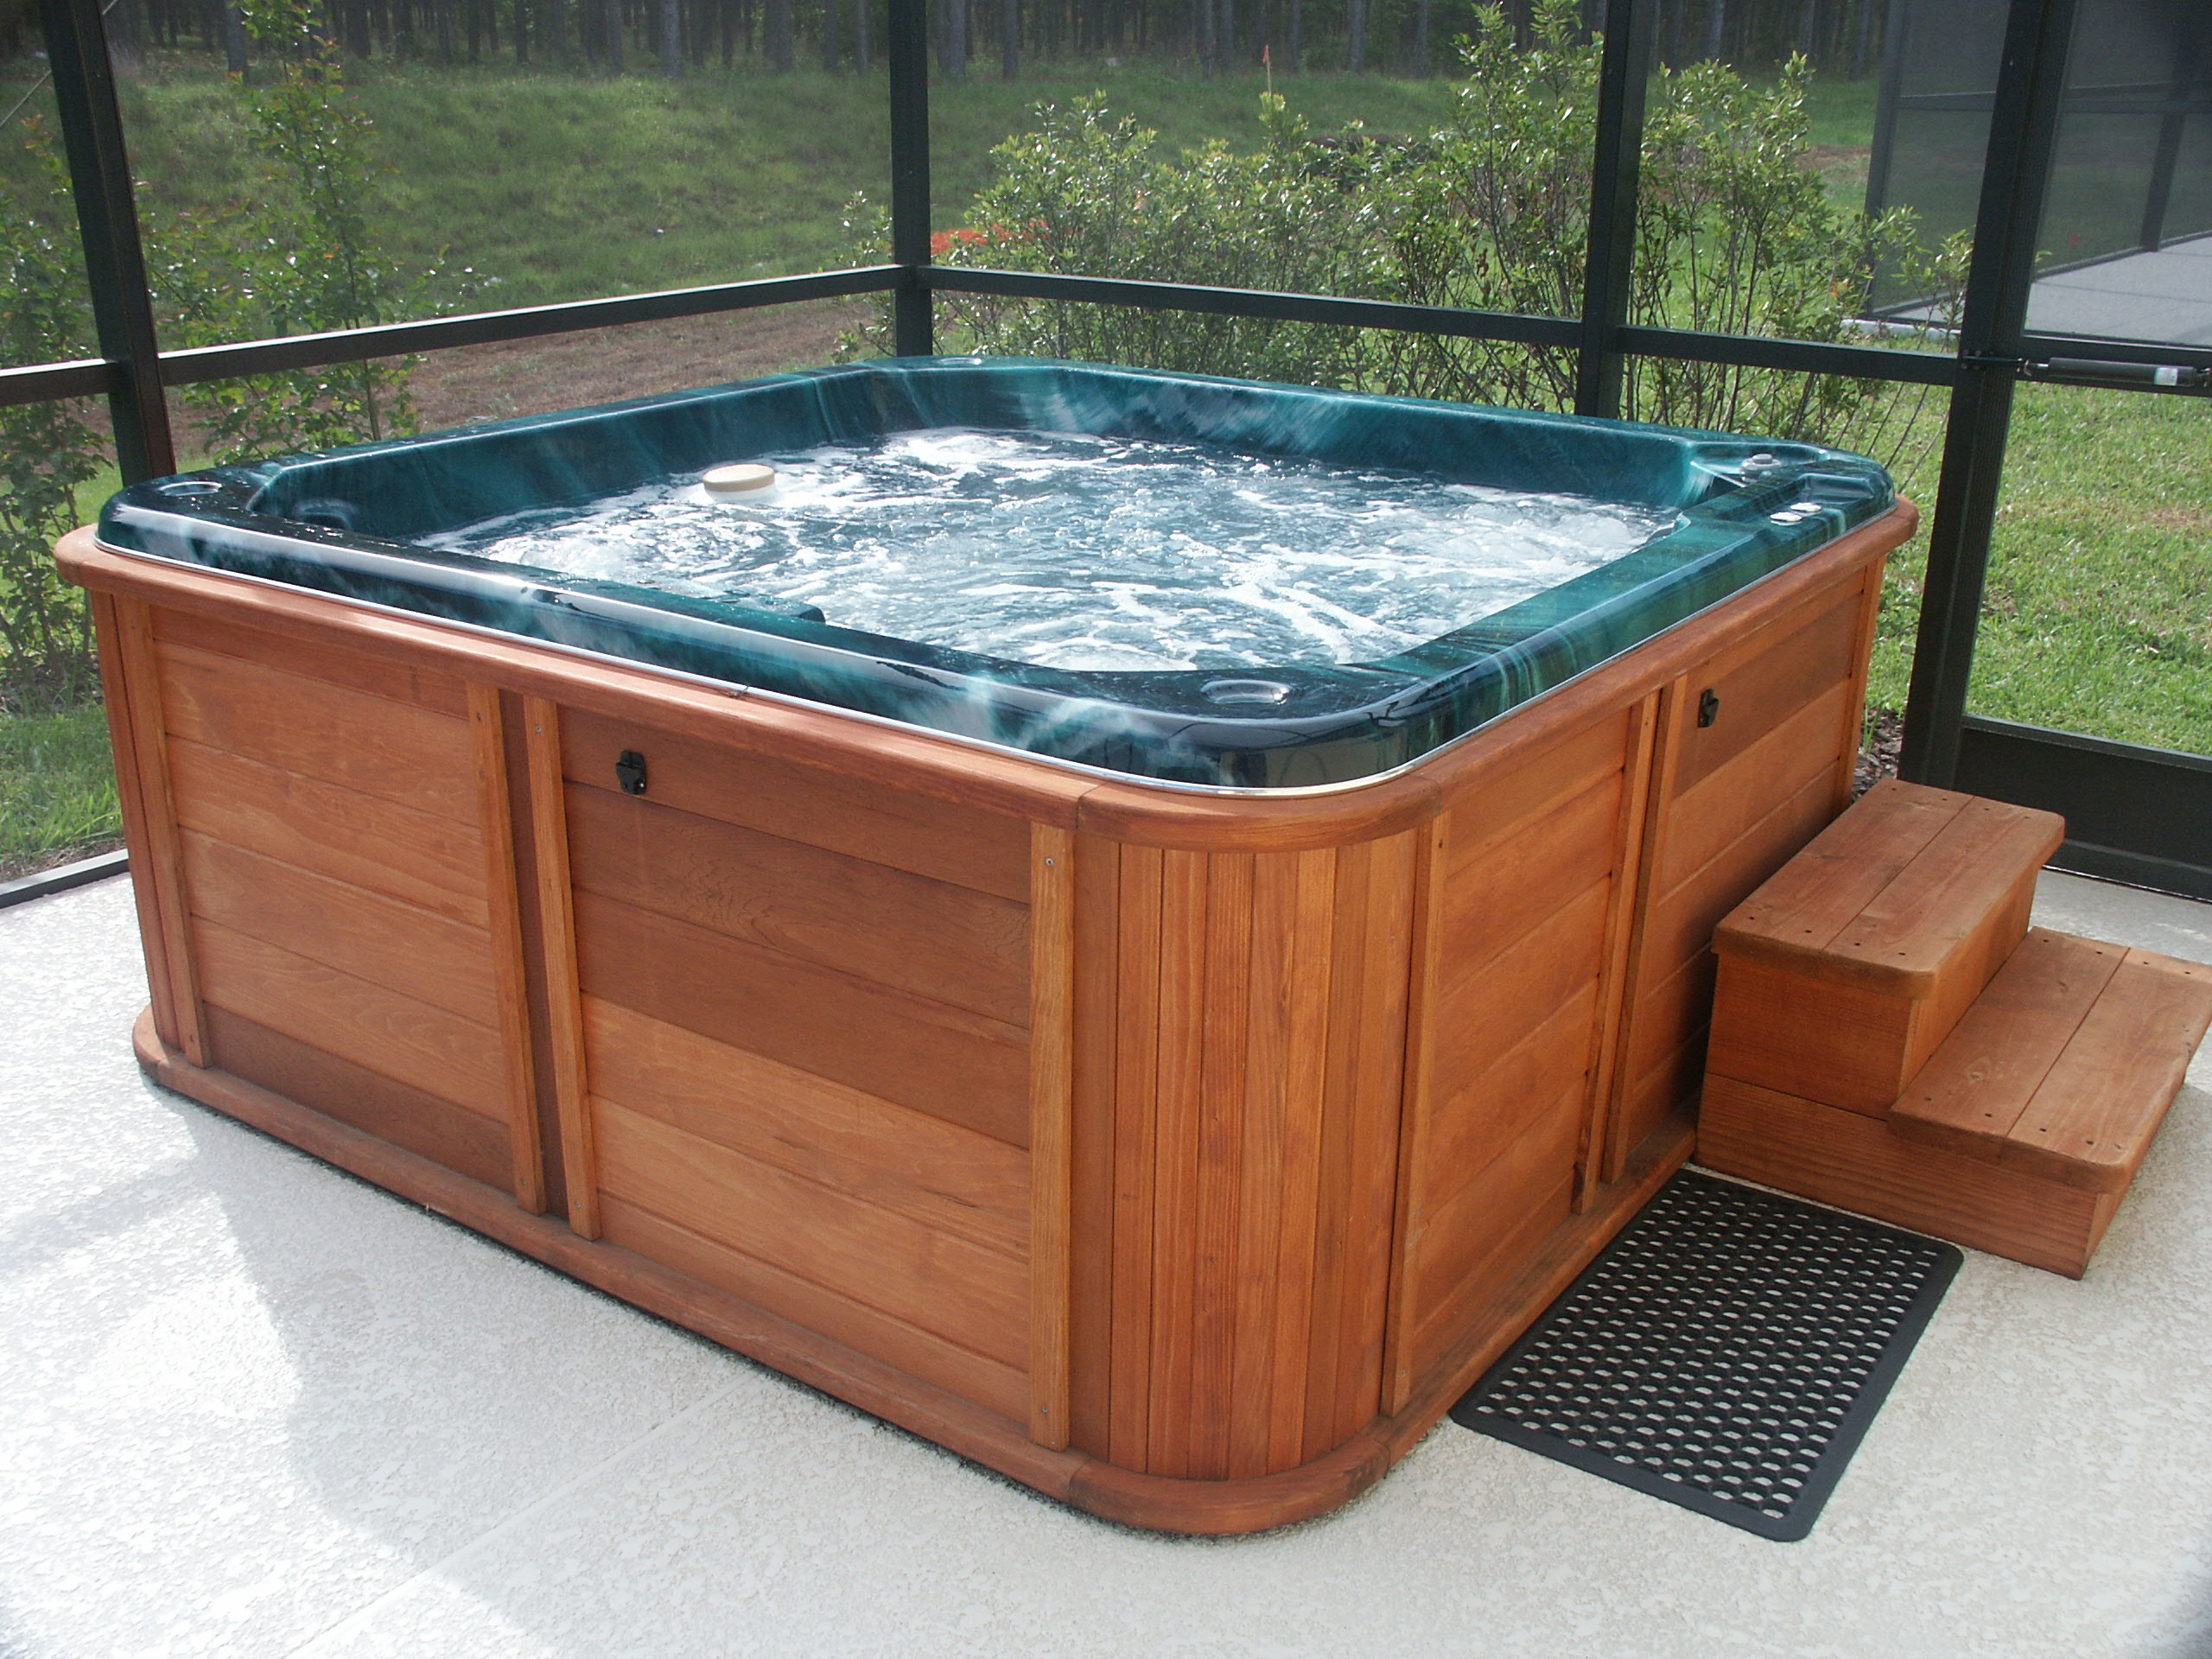 Get a Loan for a New Hot Tub with HFS Financial